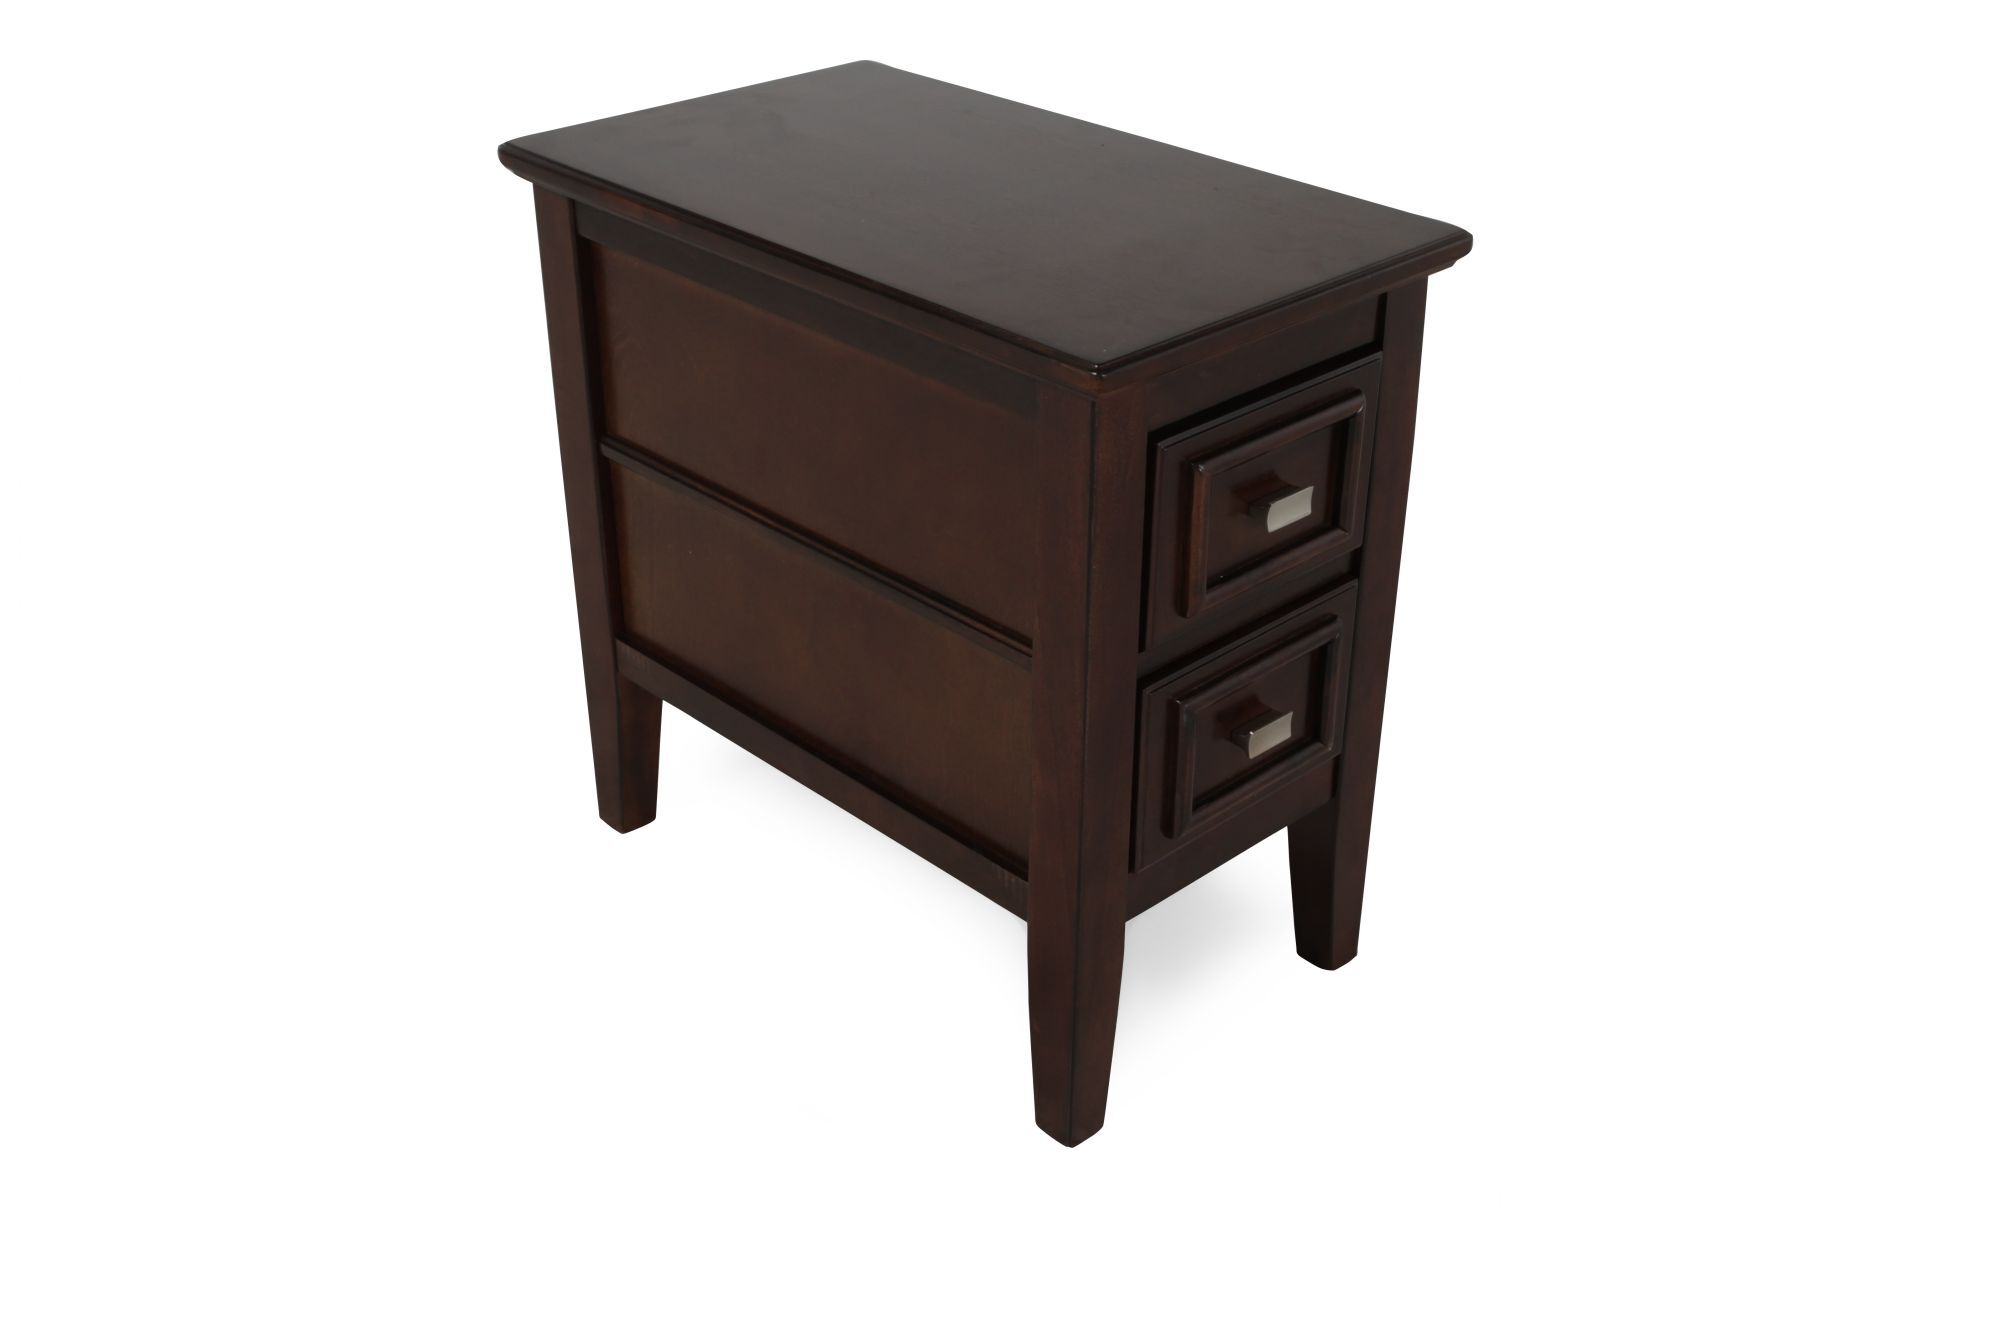 Modern Chairside Table Rectangular Contemporary Chairside End Table In Deep